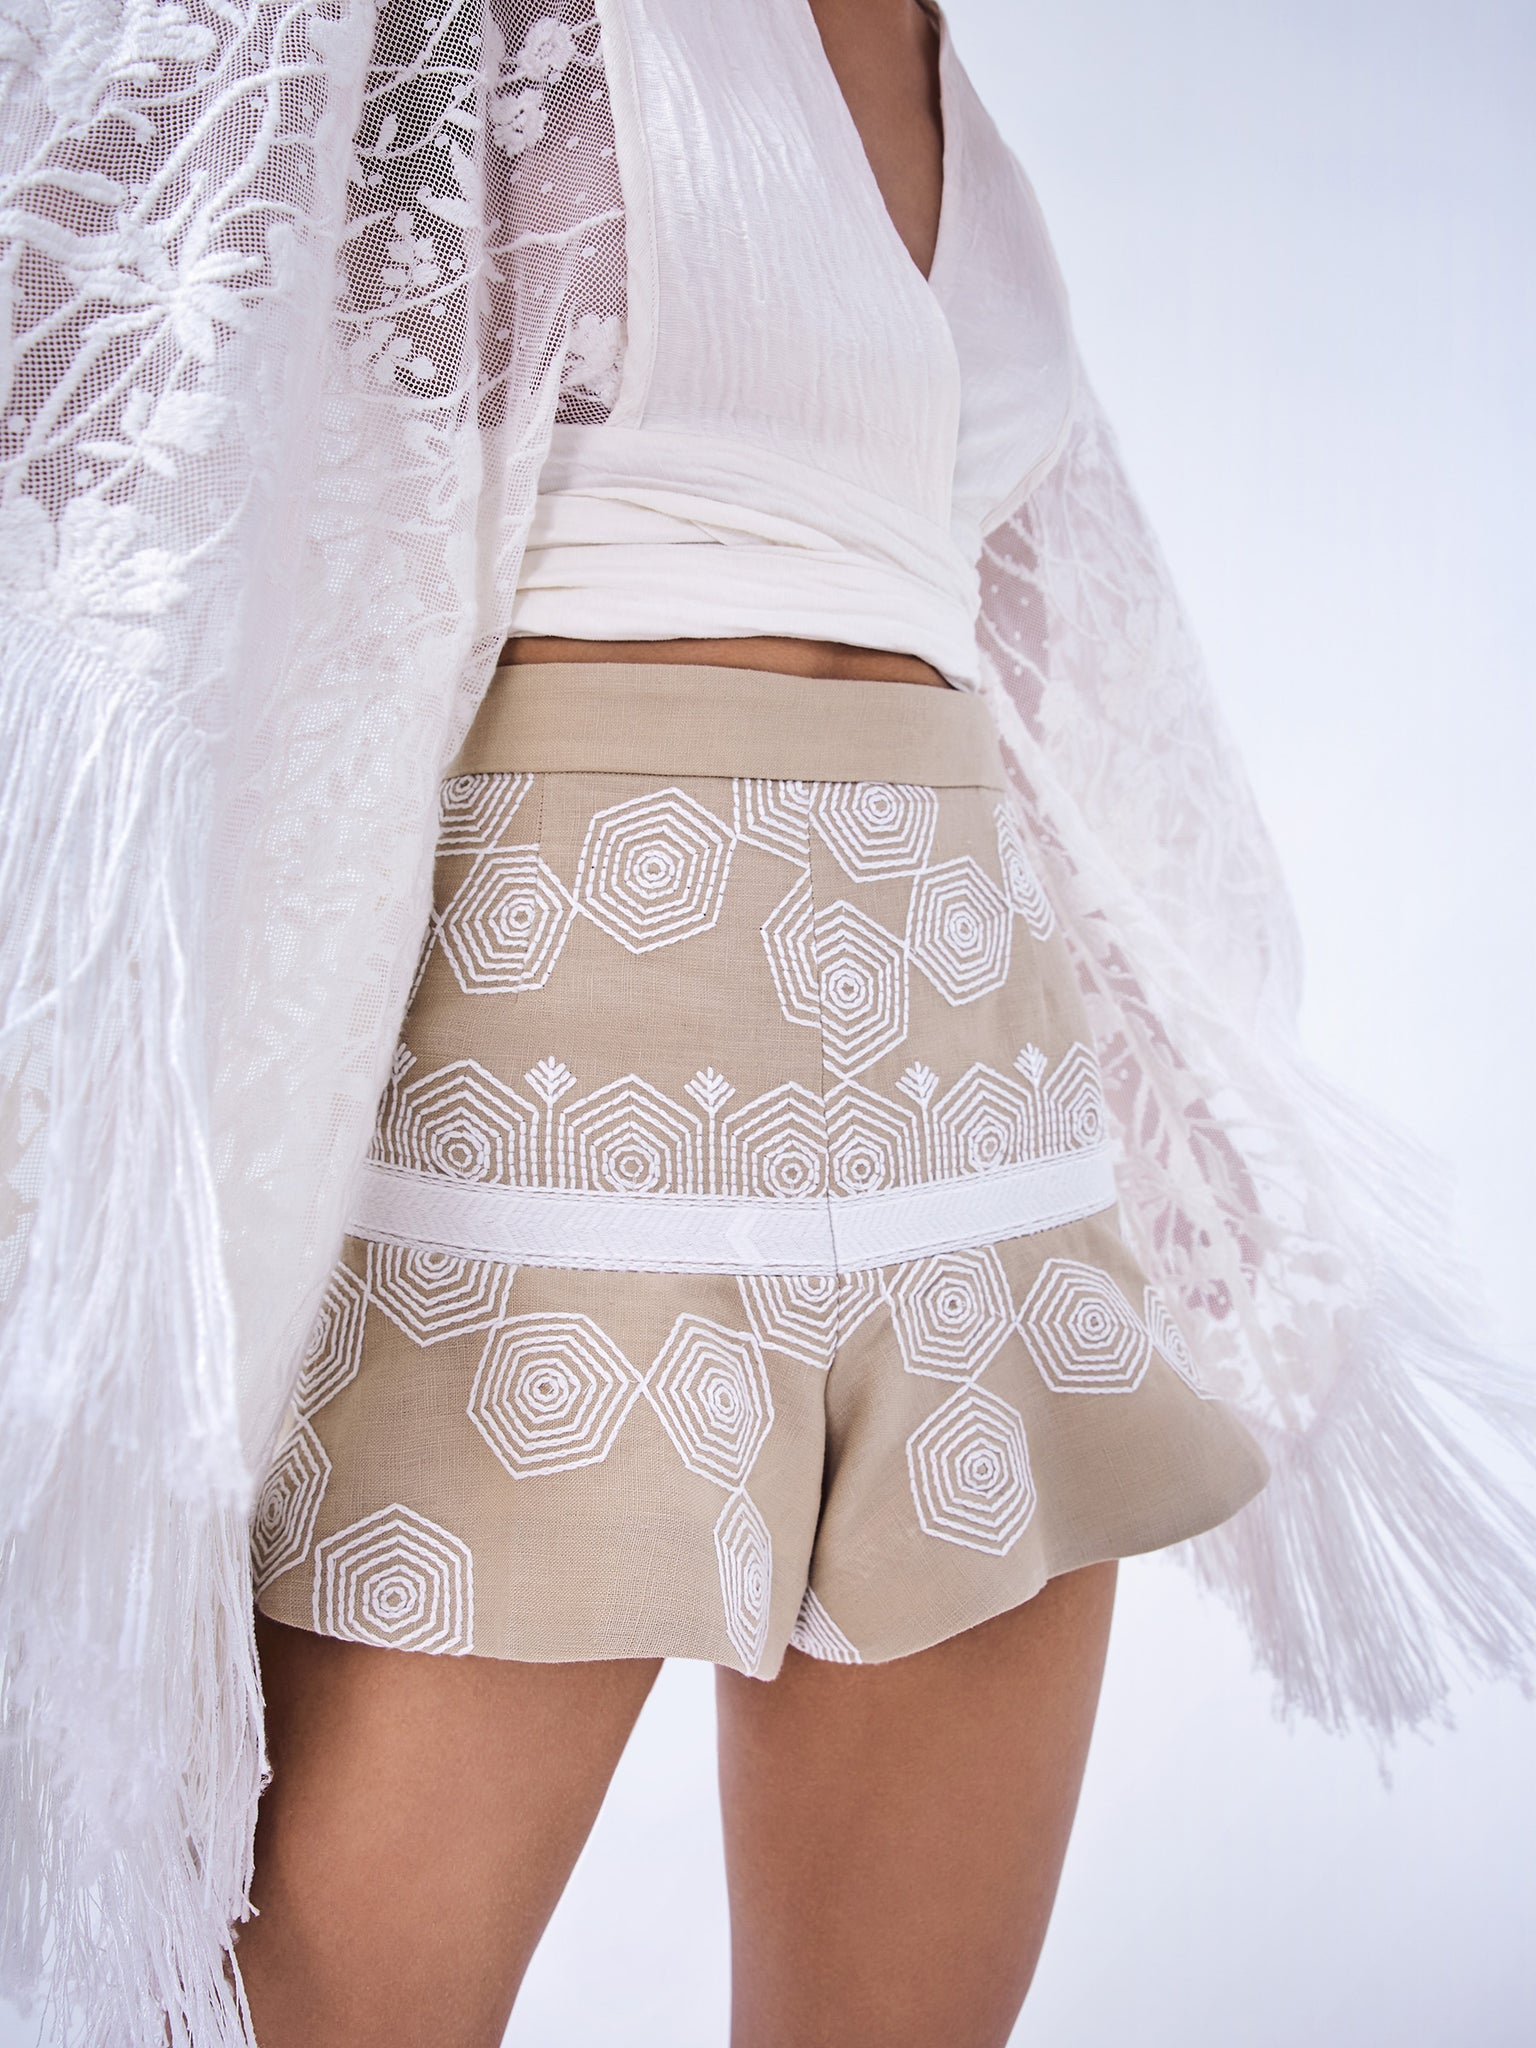 Alexis Acadia Shorts in beige with white embroidery and a wide leg hem - Rear View